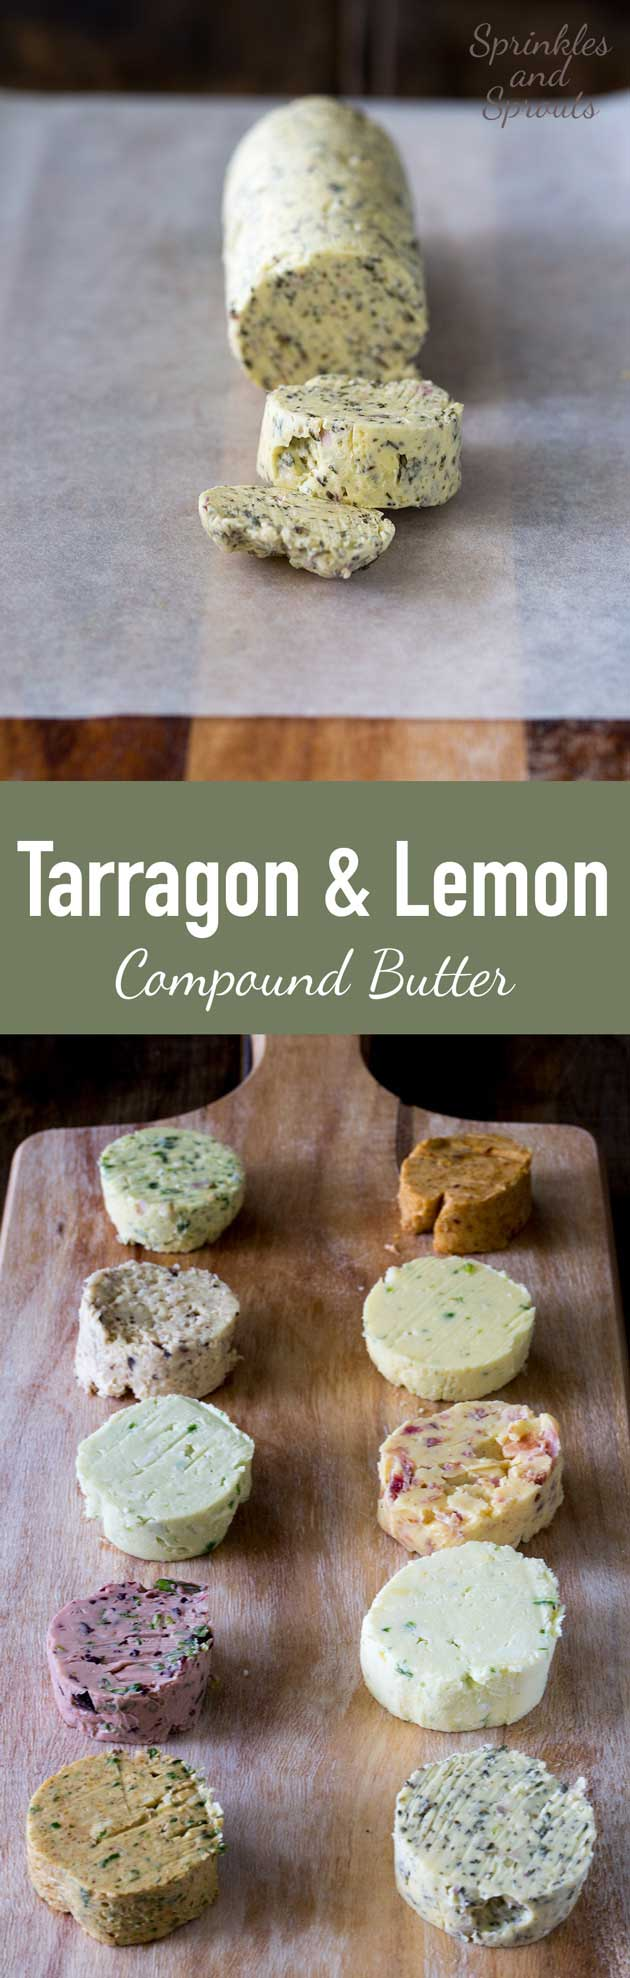 This Tarragon and Lemon Butter is beautifully light and fragrant. It adds a wonderful hint of anise to your meal.